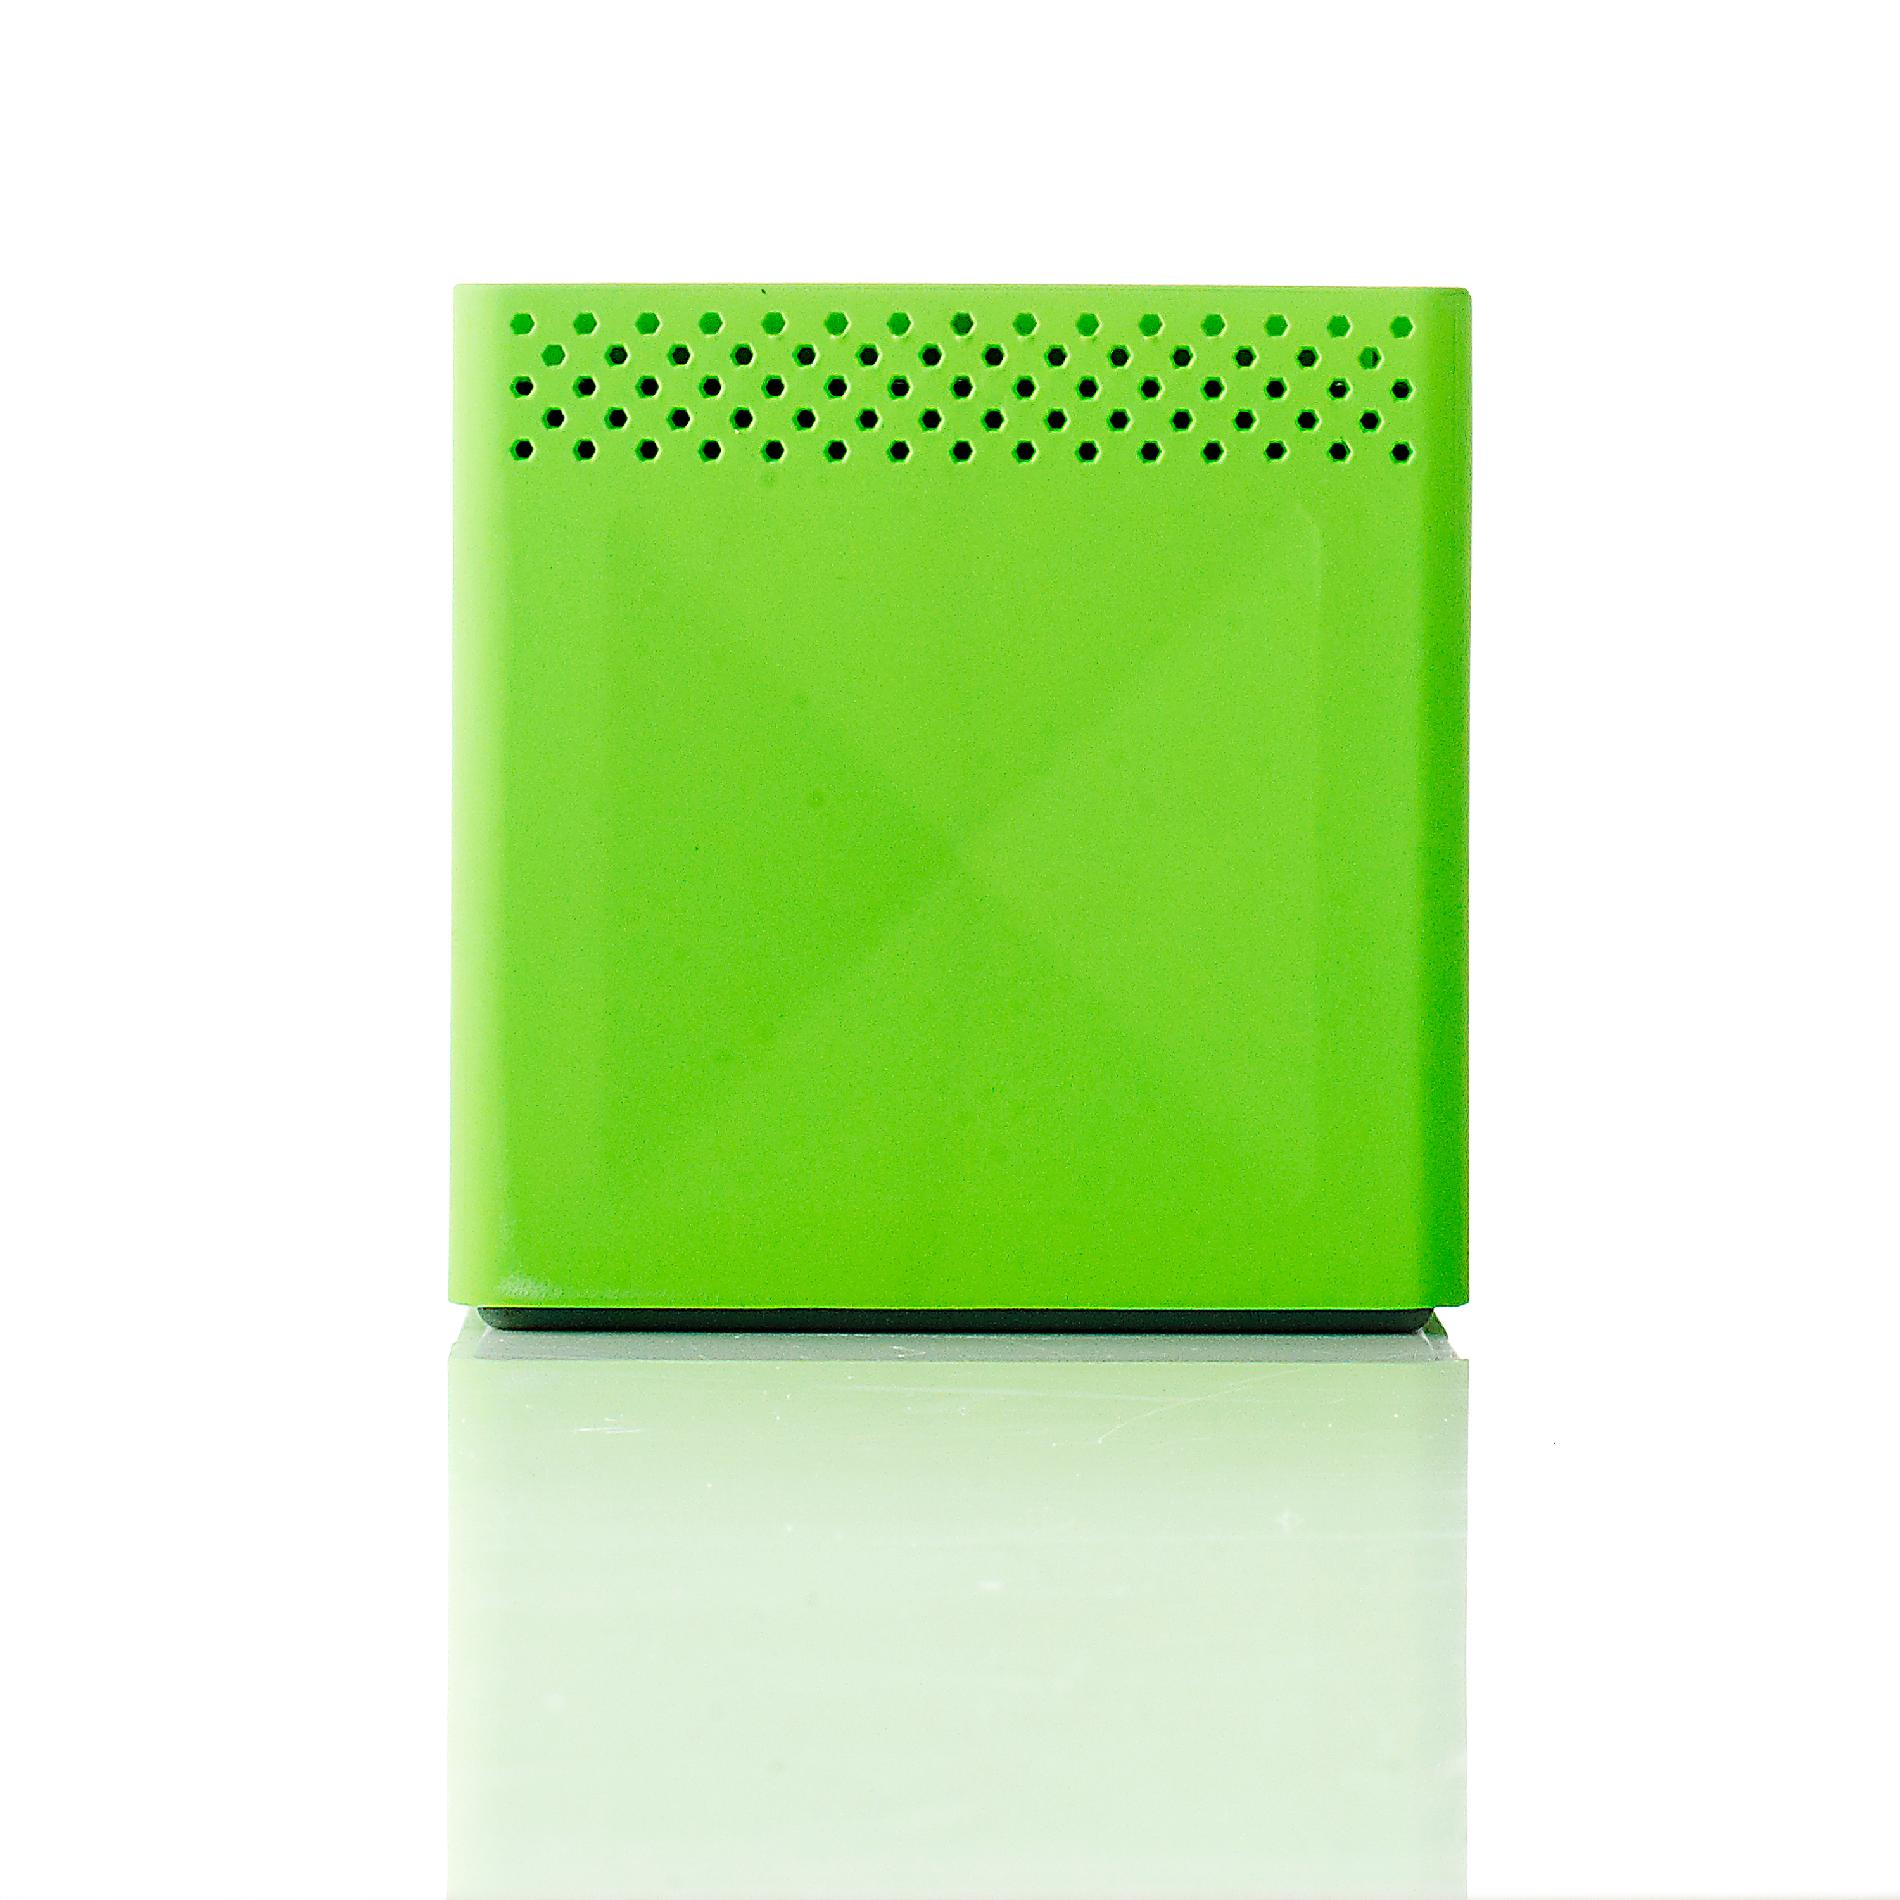 BEM WIRELESS Mobile Bluetooth Speaker - Green